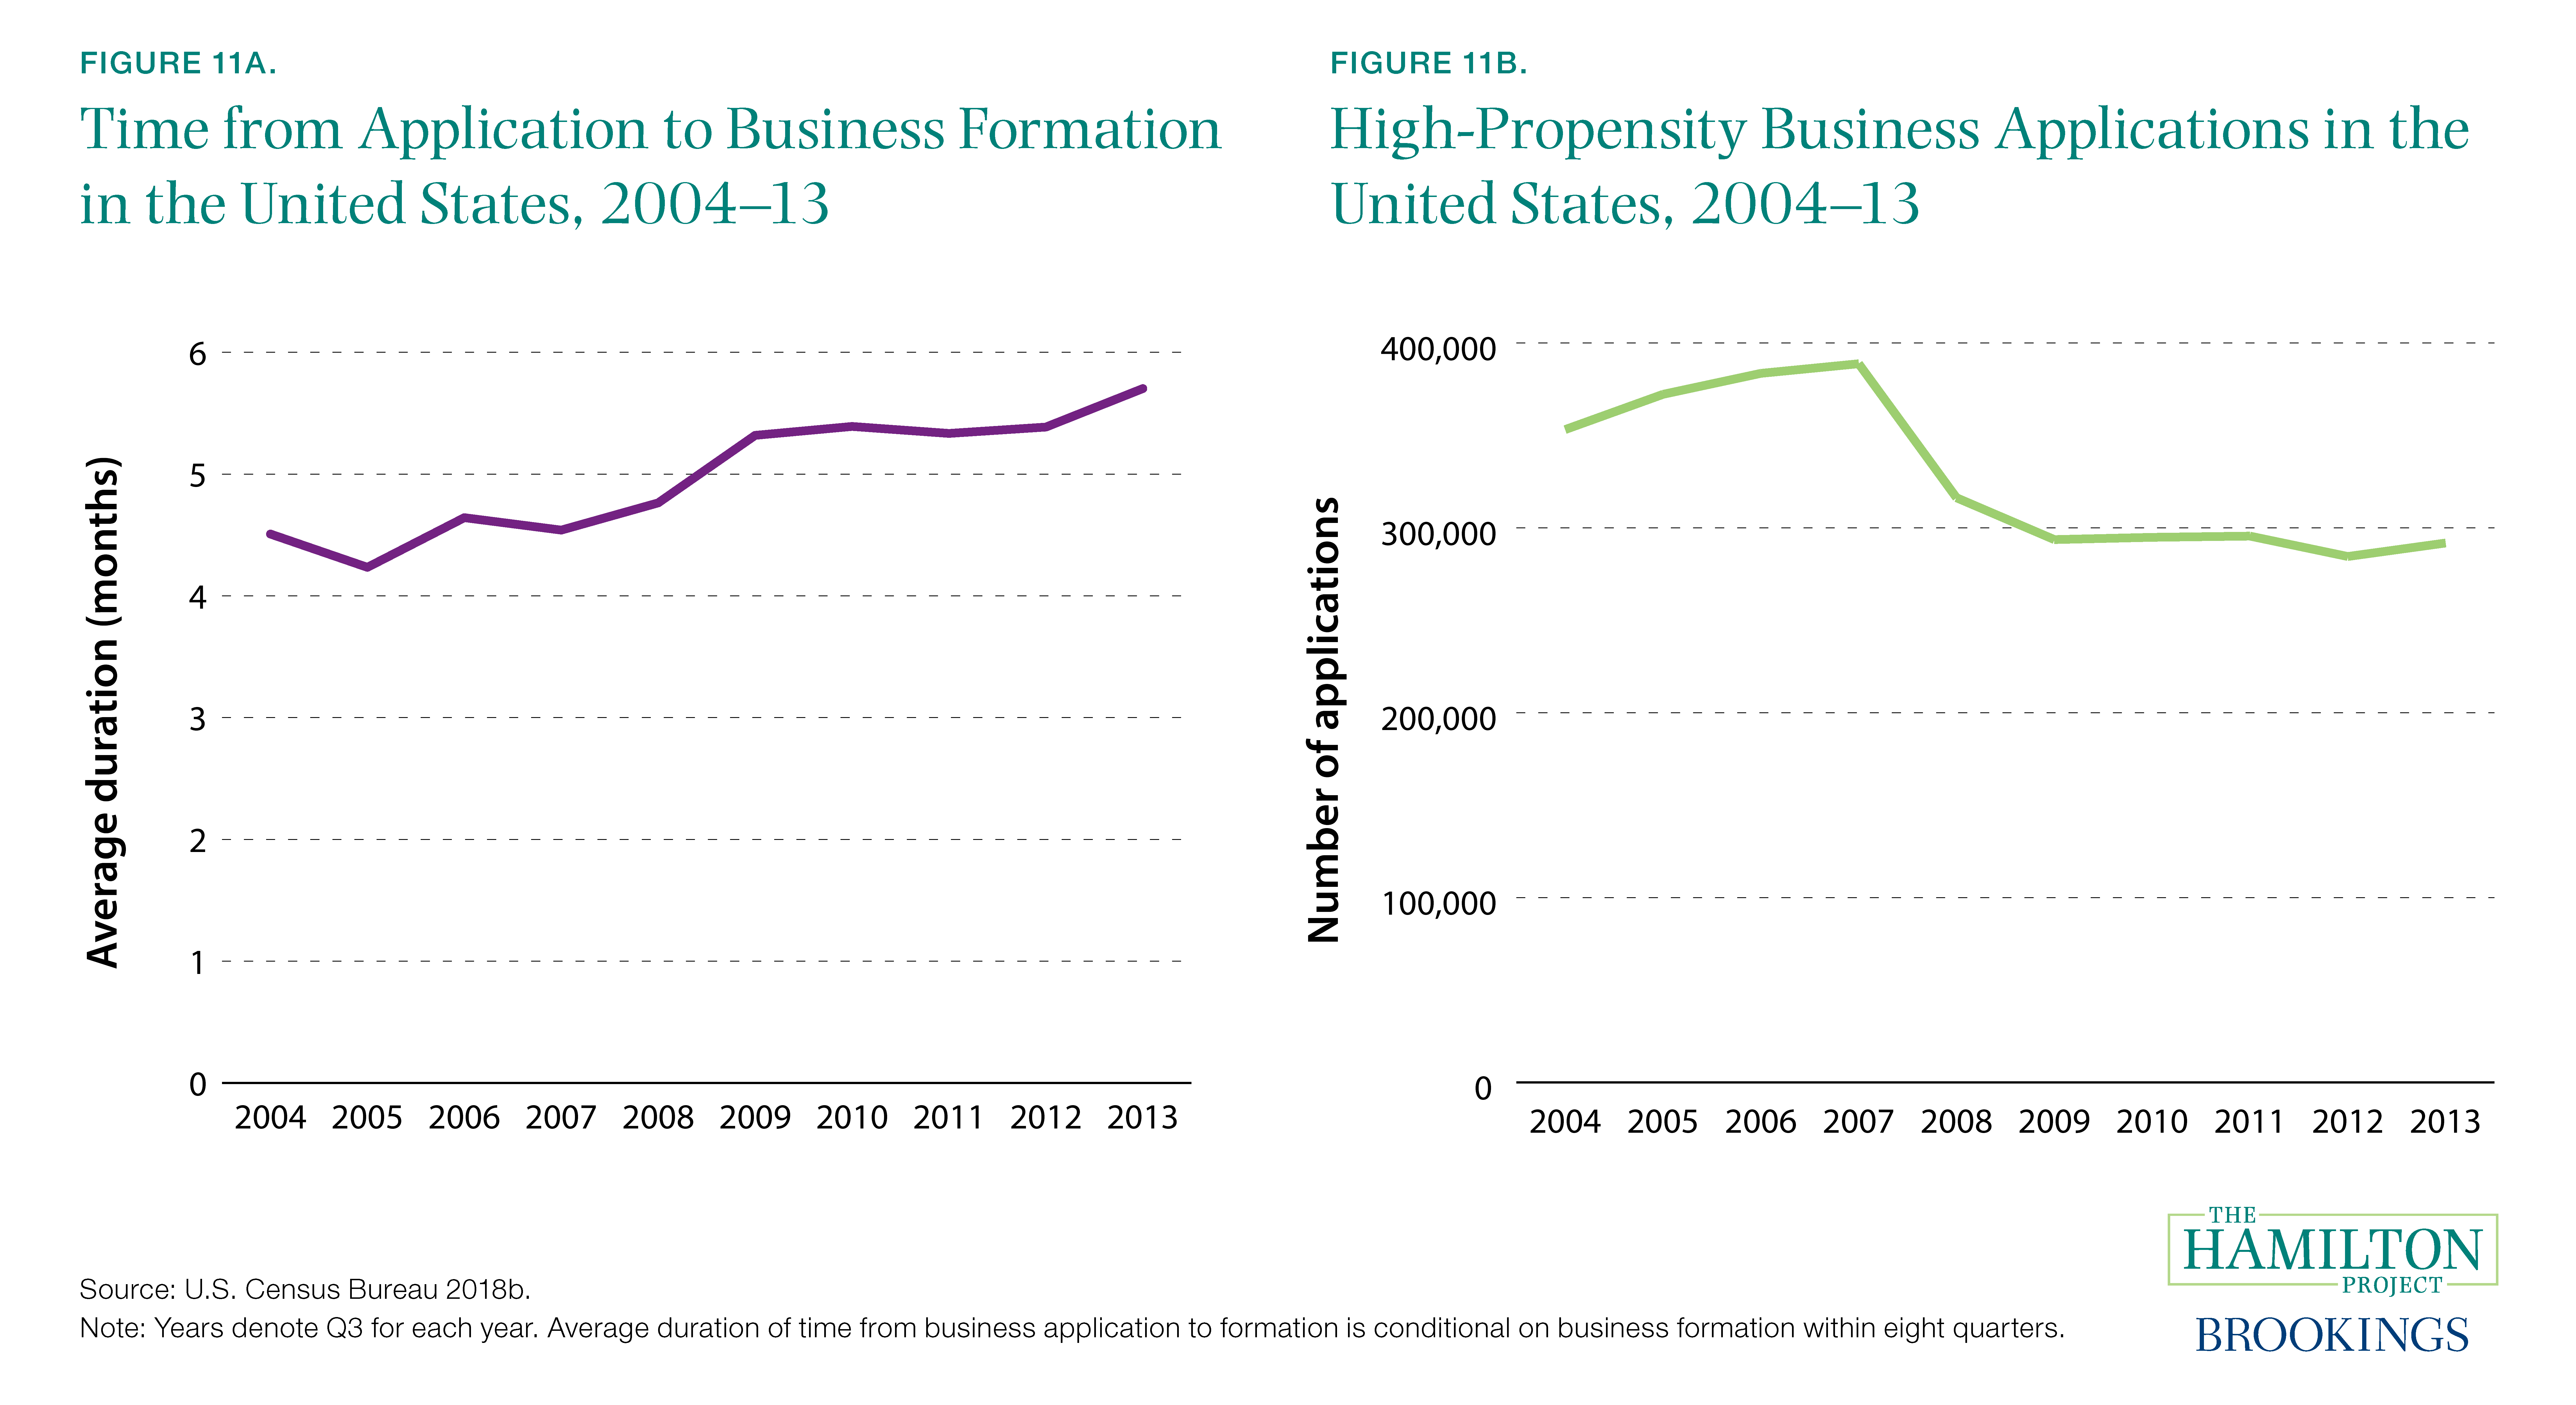 Figure 11A. Time from Application to Business Formation in the United States, 2004–13 and Figure 11B. High-Propensity Business Applications in the United States, 2004–13